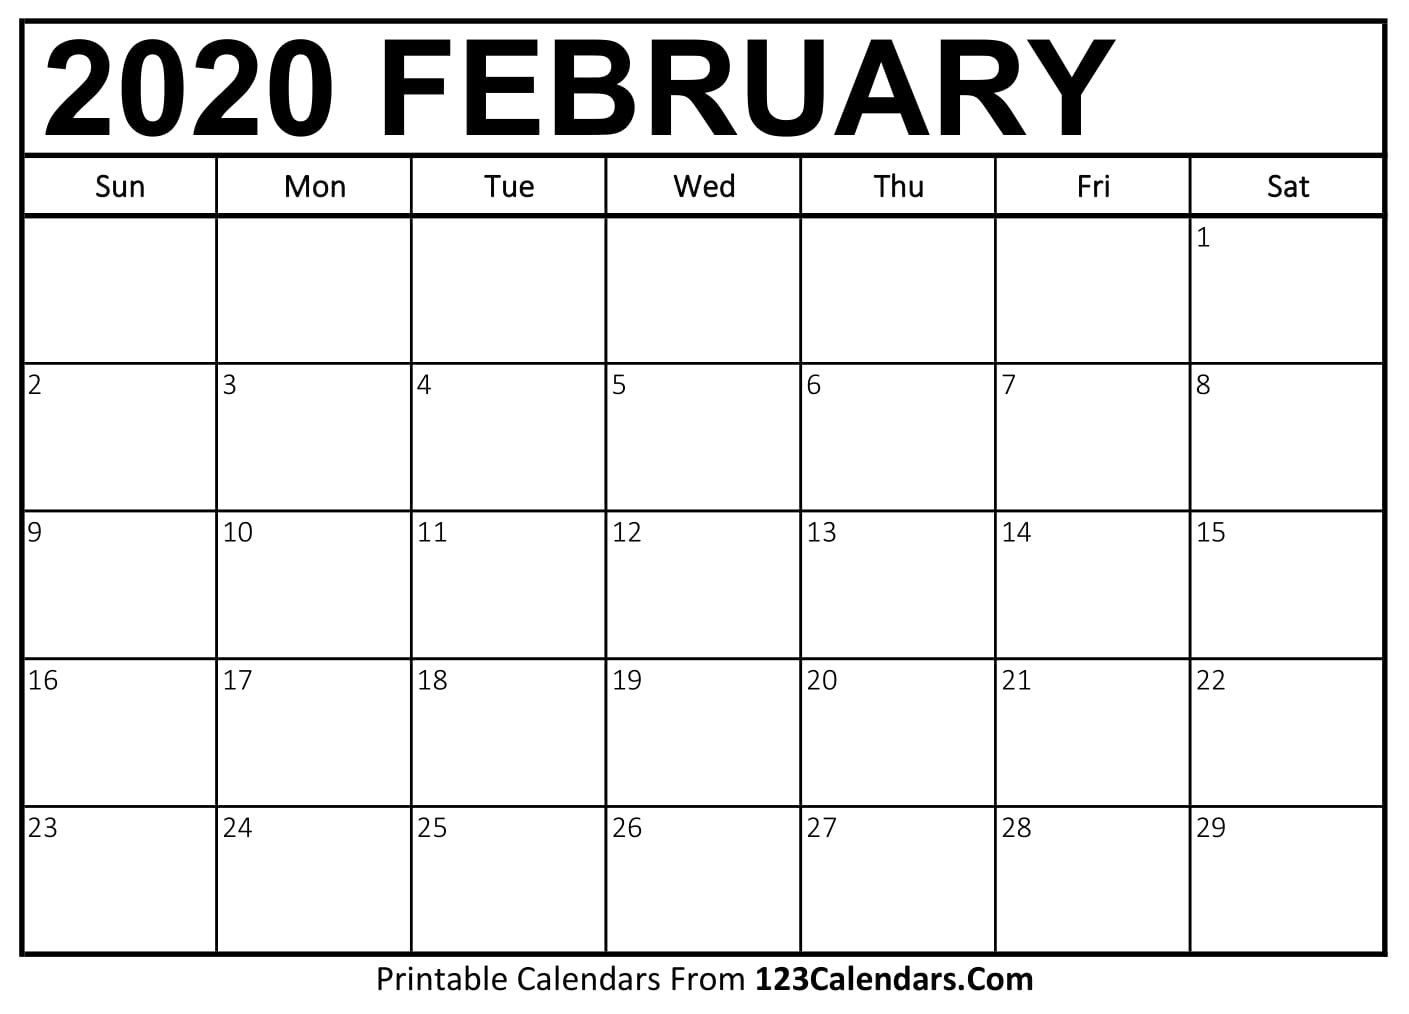 image about Printable Feb. Calendar titled February 2020 Printable Calendar